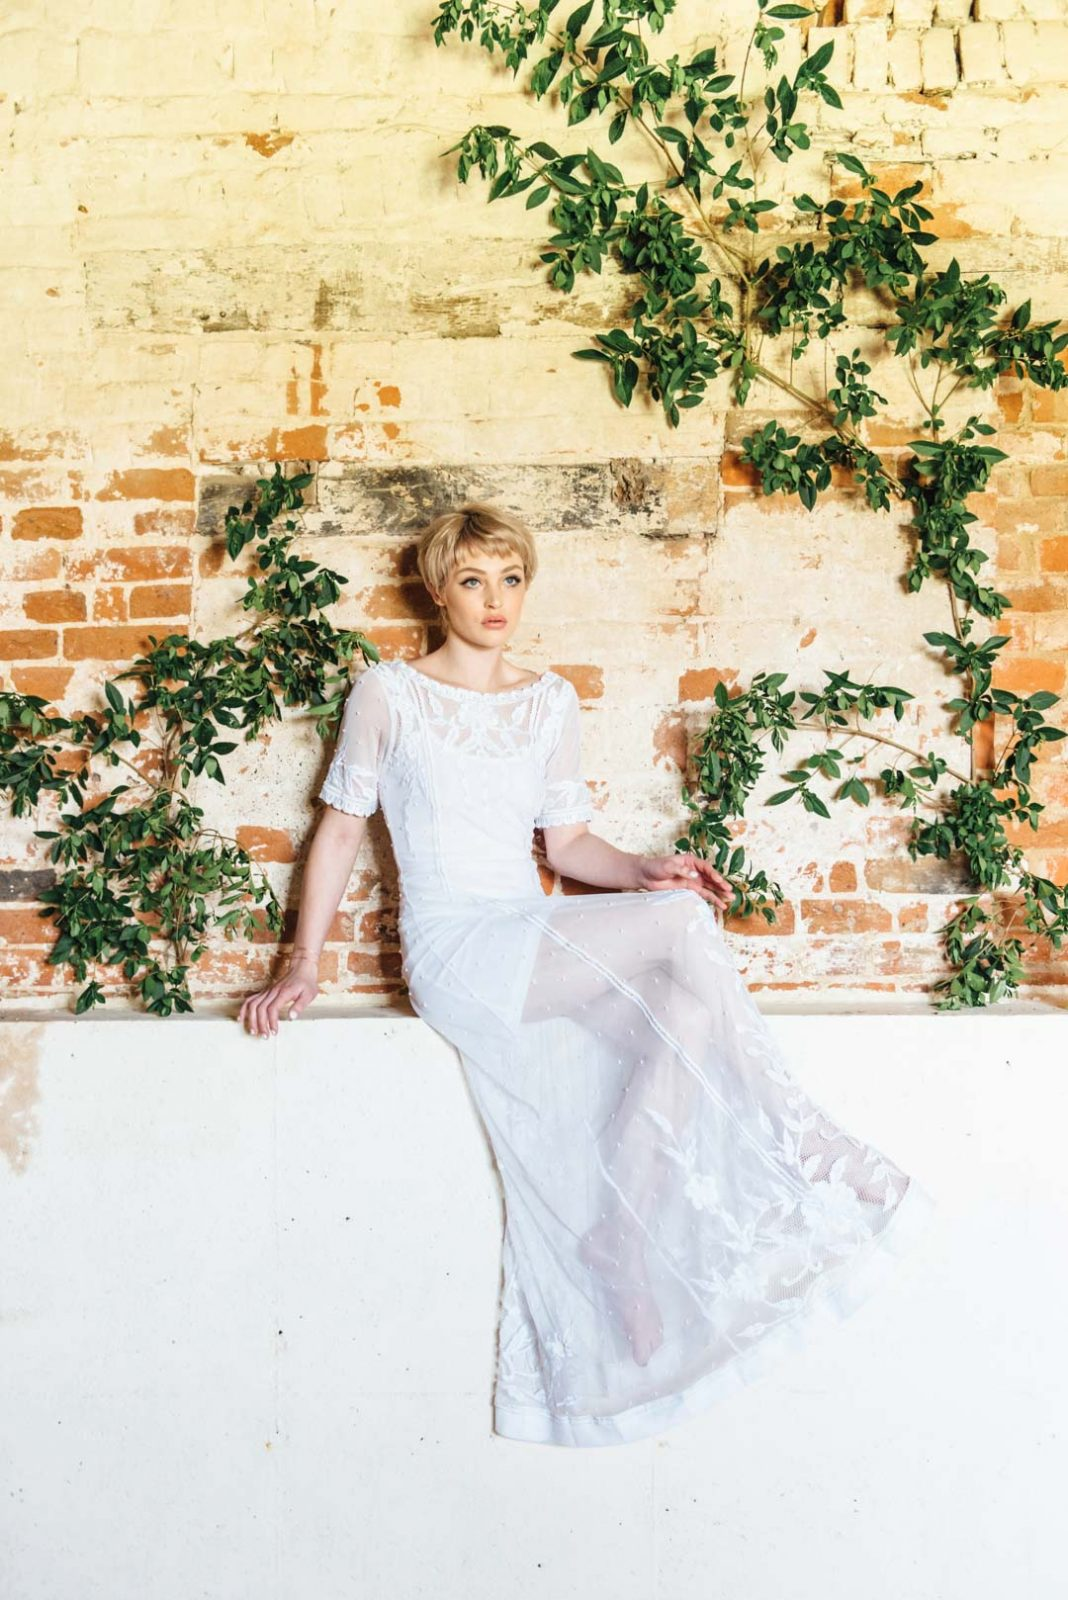 BethMoseleyPhotography_WhiteonWhite-80FINAL1080px wide-221